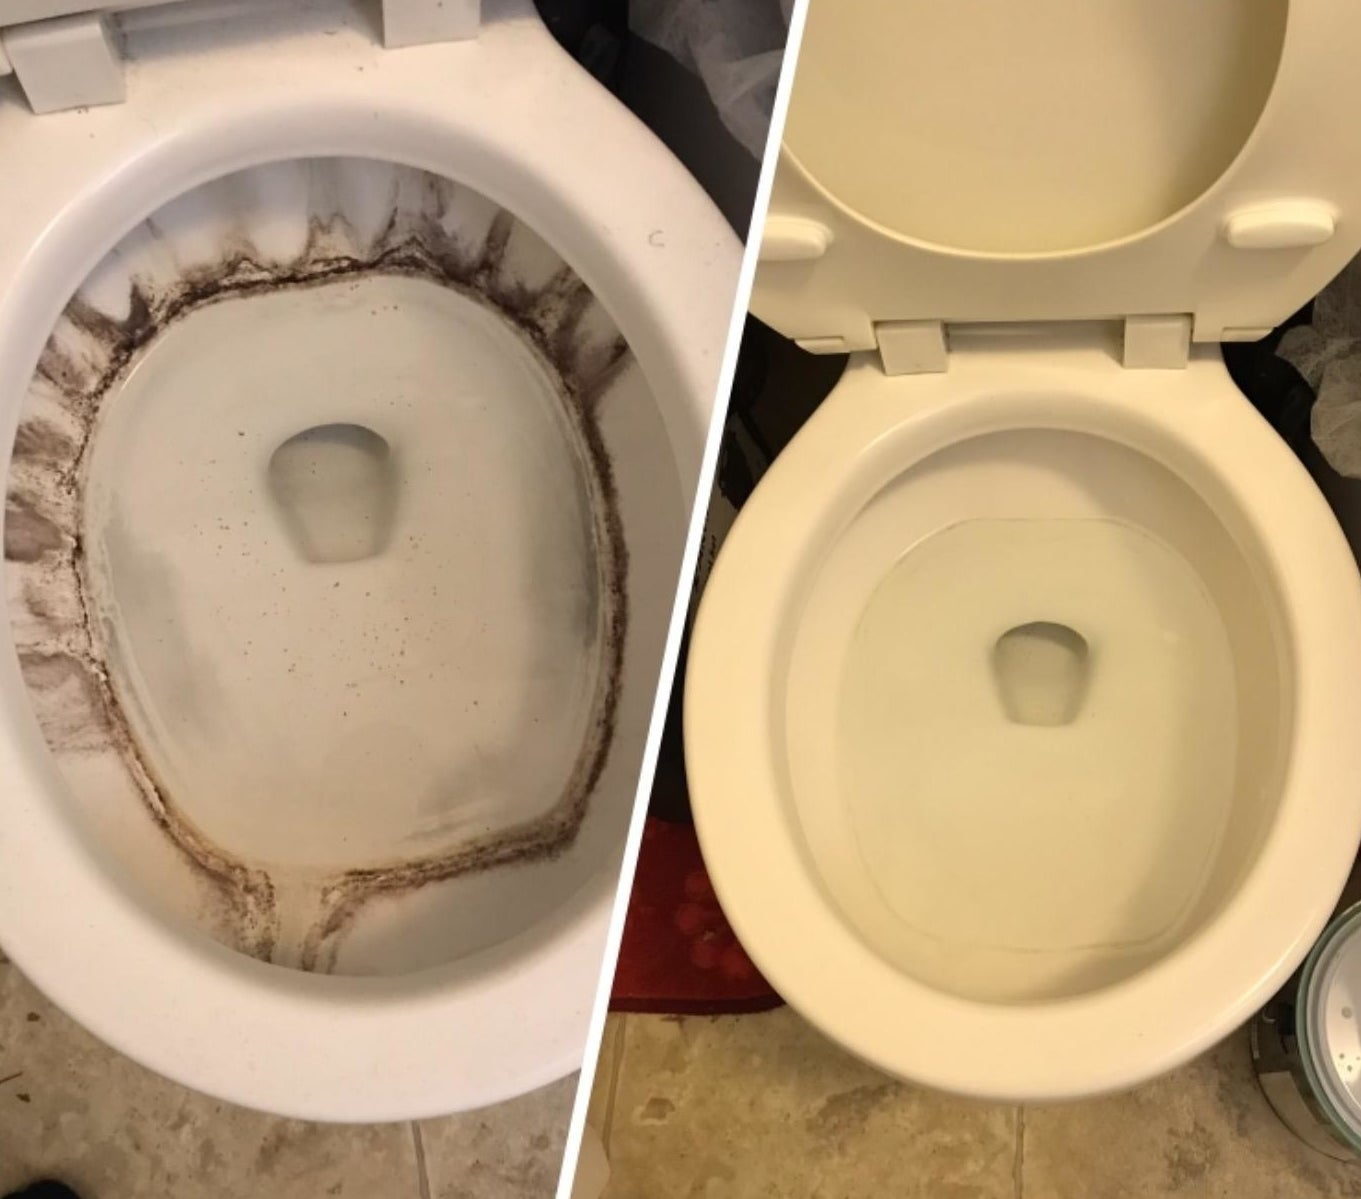 reviewer's photo of a toilet with brown stains in it compared to the after photo of it looking clean, white, and stain-free